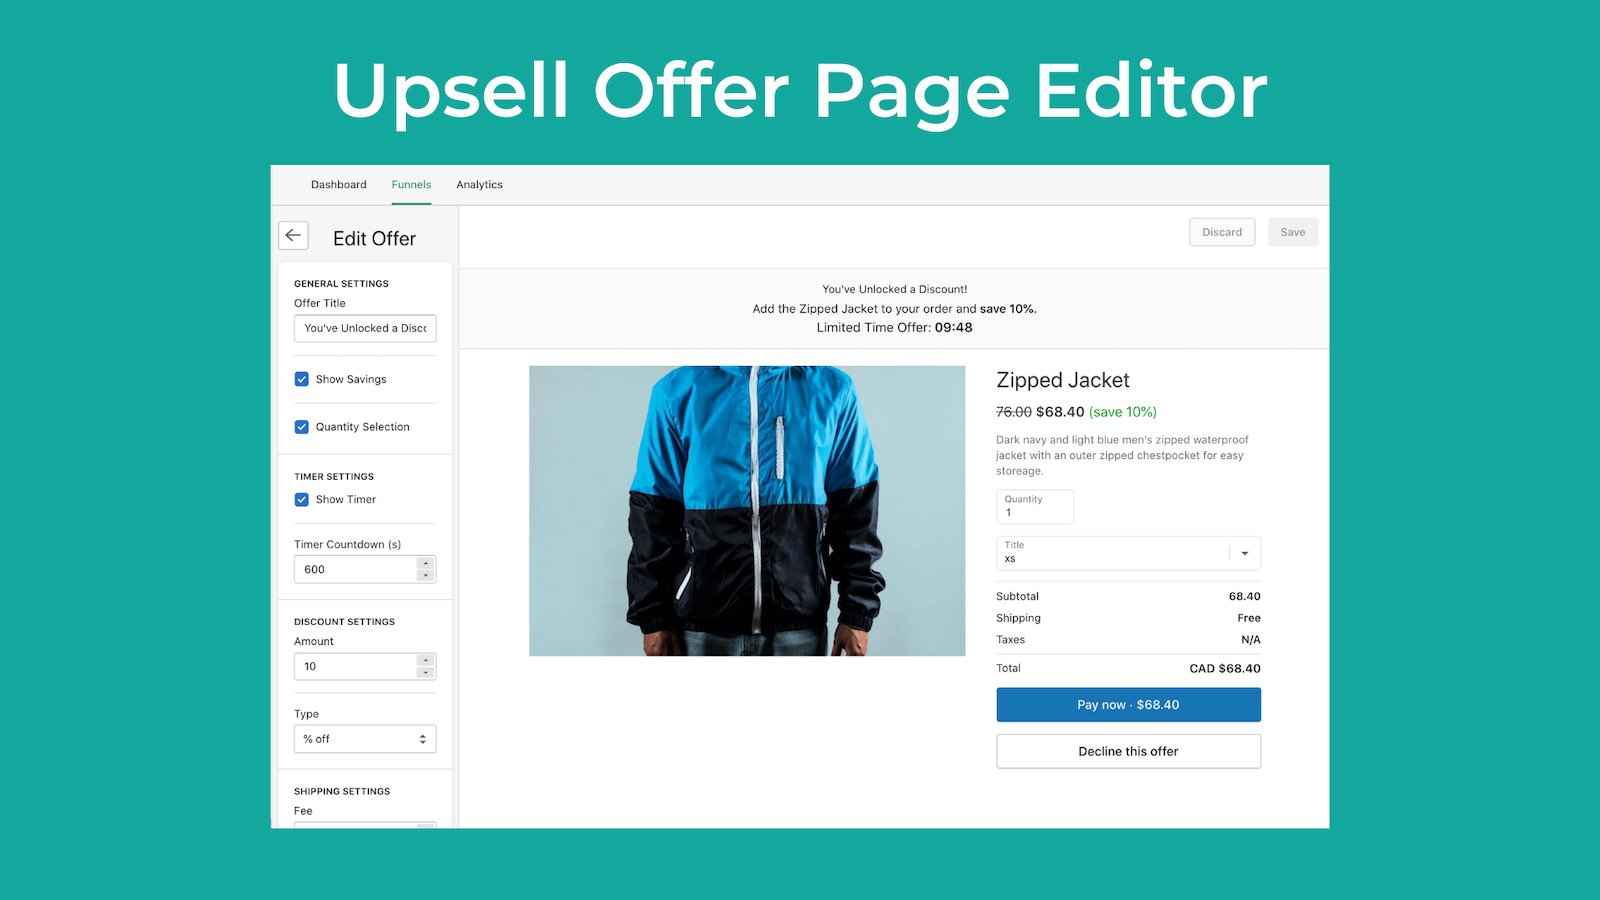 Upsell Offer Page Editor